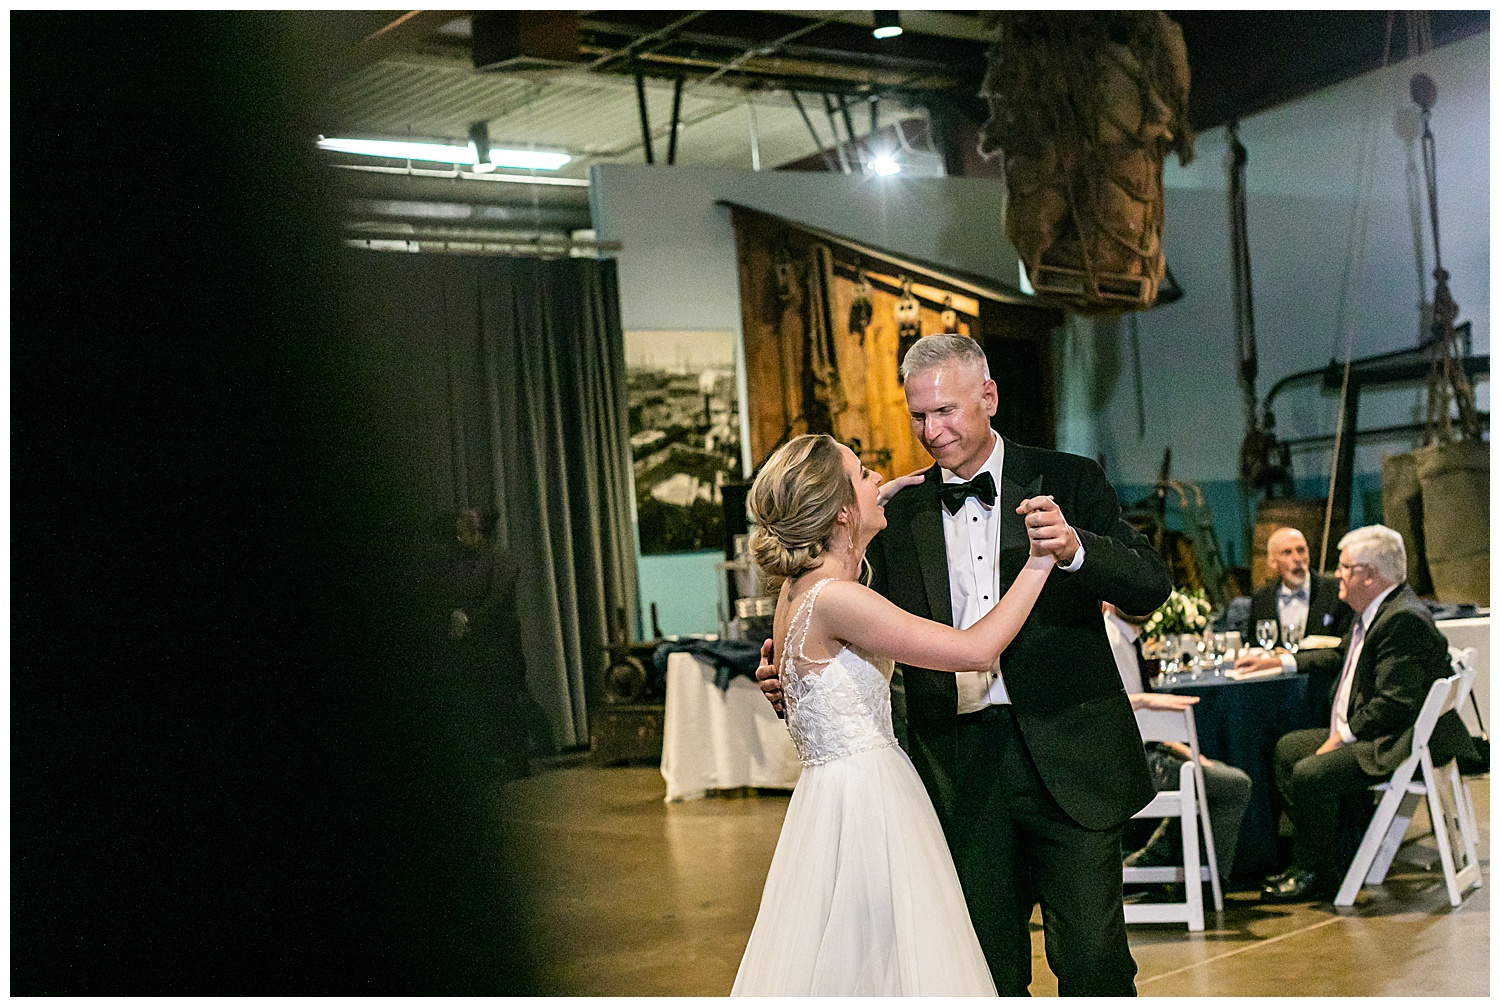 Jenn James Baltimore Museum of Industry Wedding Living Radiant Photography photos_0135.jpg